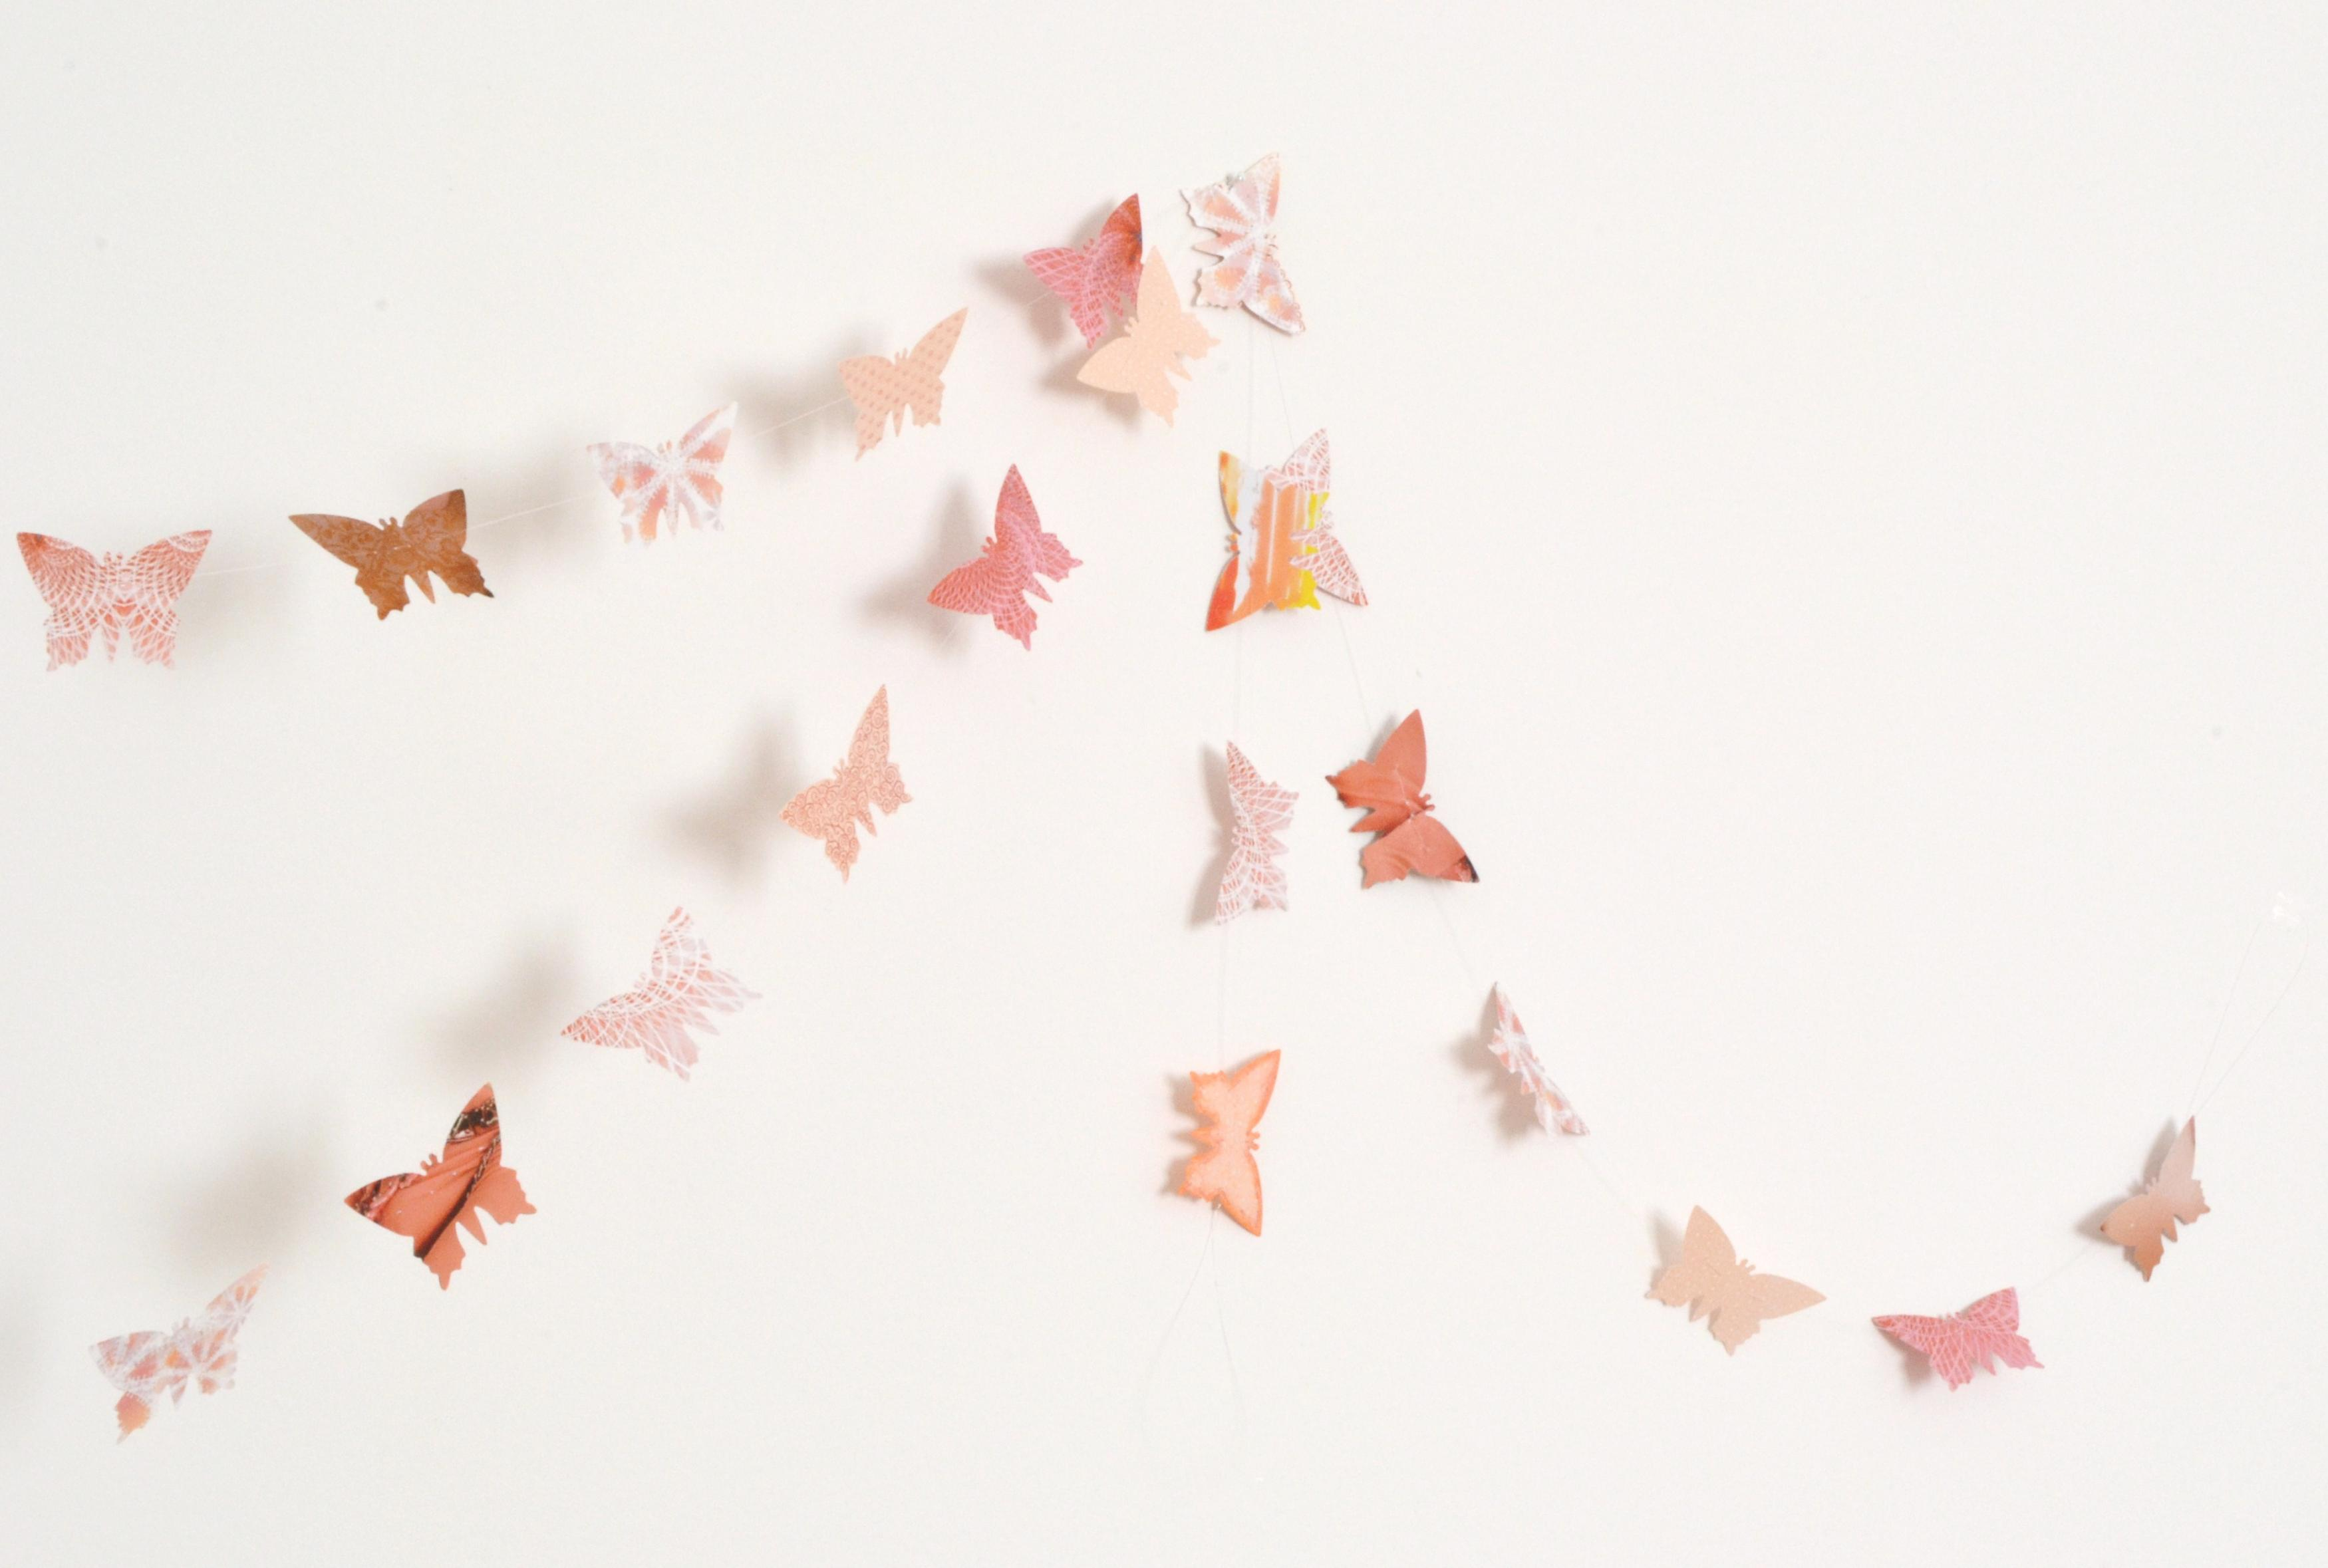 This pretty paper butterfly garland is a sinch* to make, and it's likely you have all the materials required sitting in your craft cupboard already. I made a.